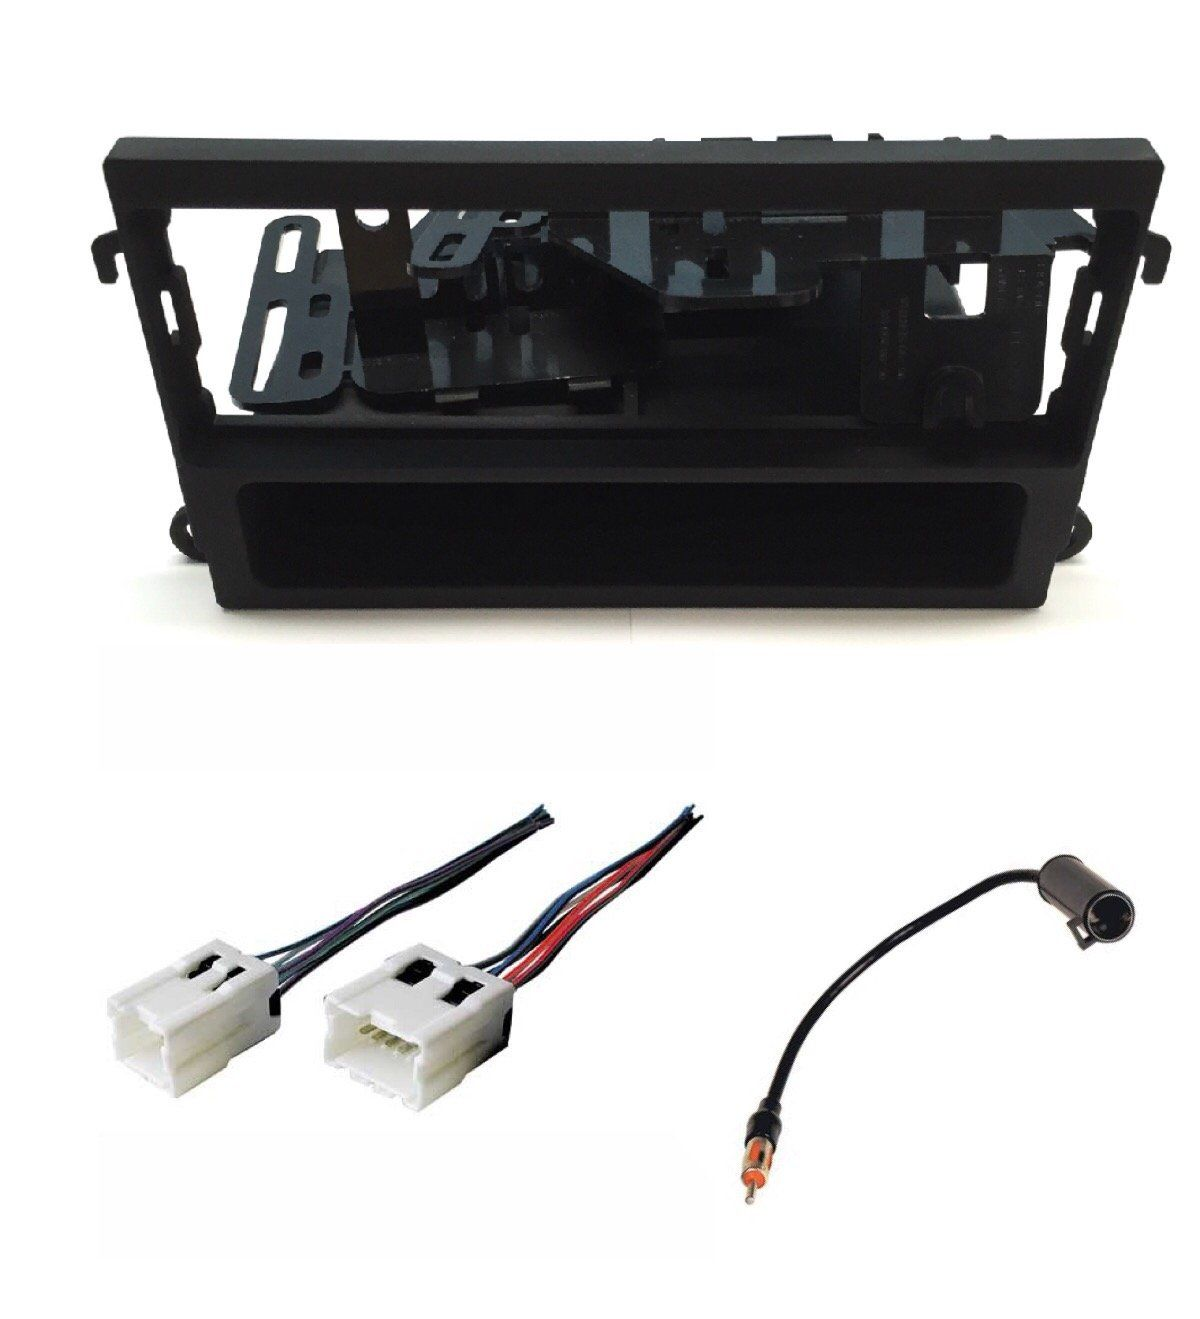 ASC Audio Car Stereo Dash Kit, Wire Harness, and Antenna